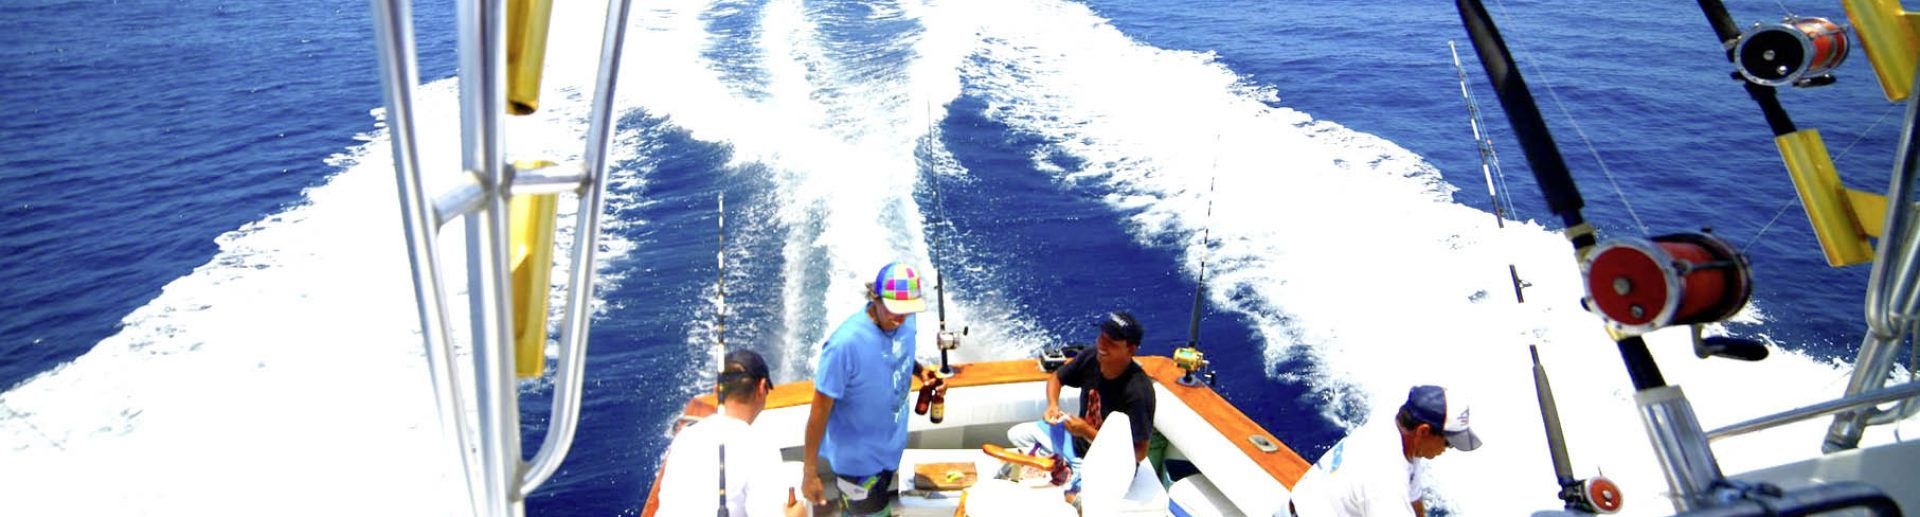 escualo-fishing-on-cruiser